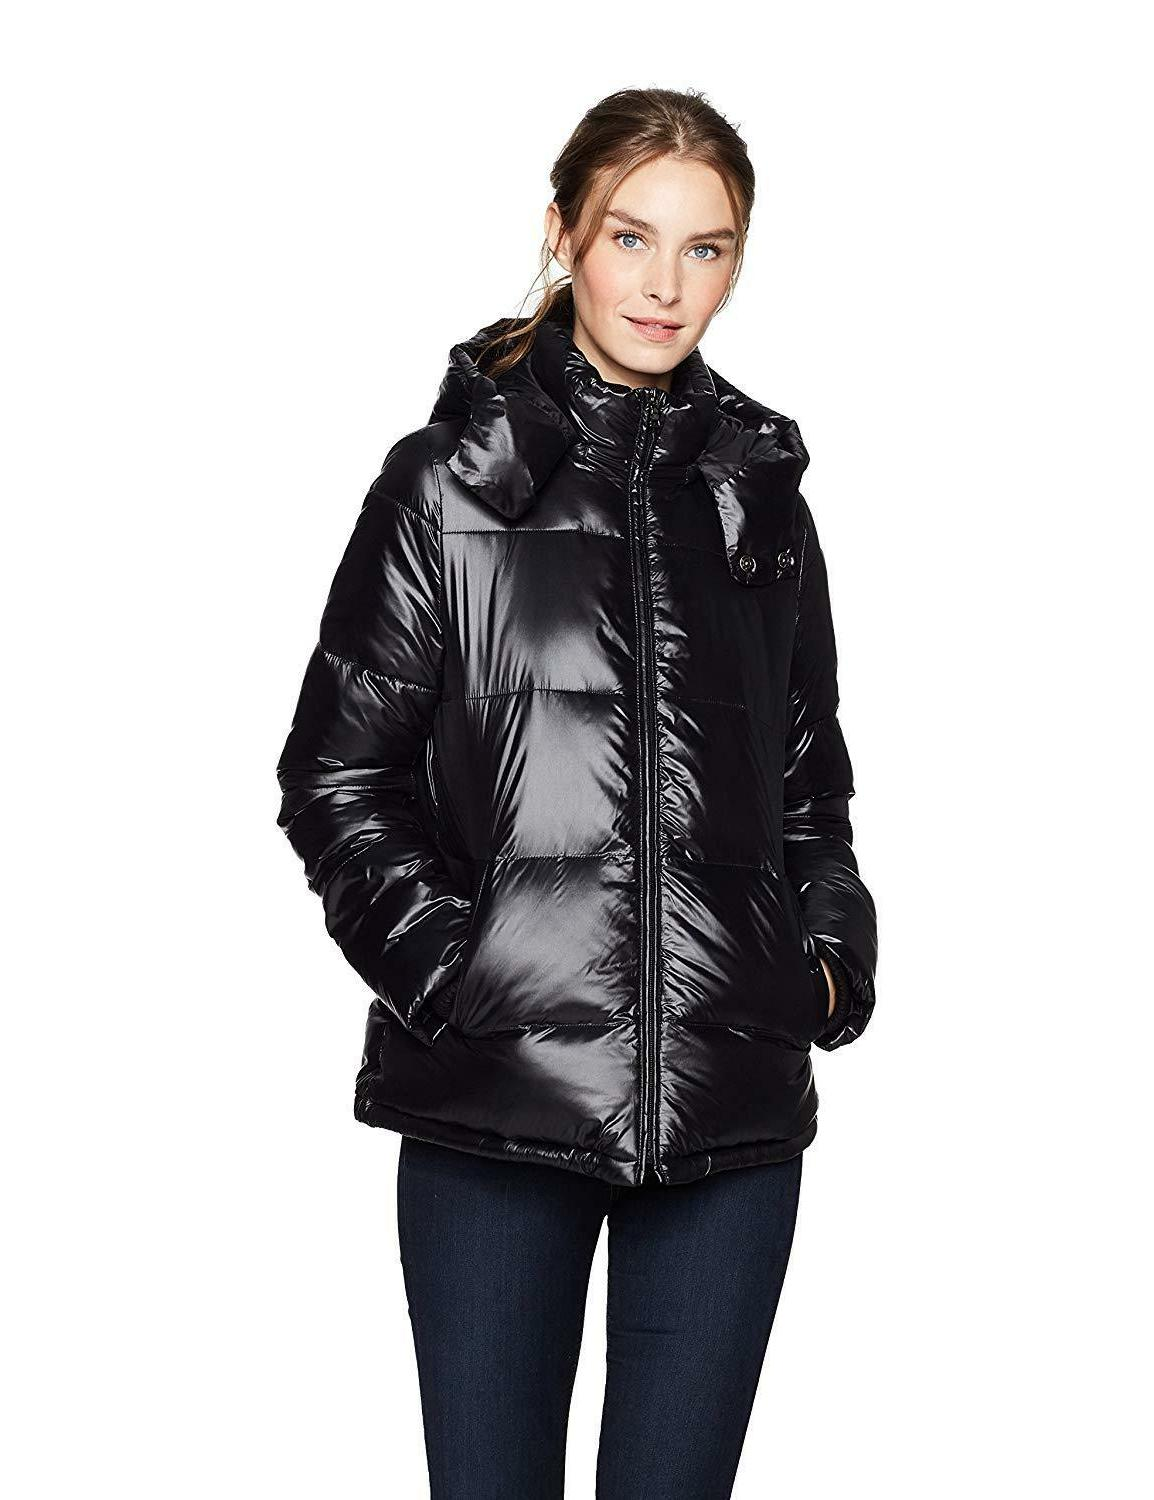 Haven Outerwear Women's Funnel-Neck